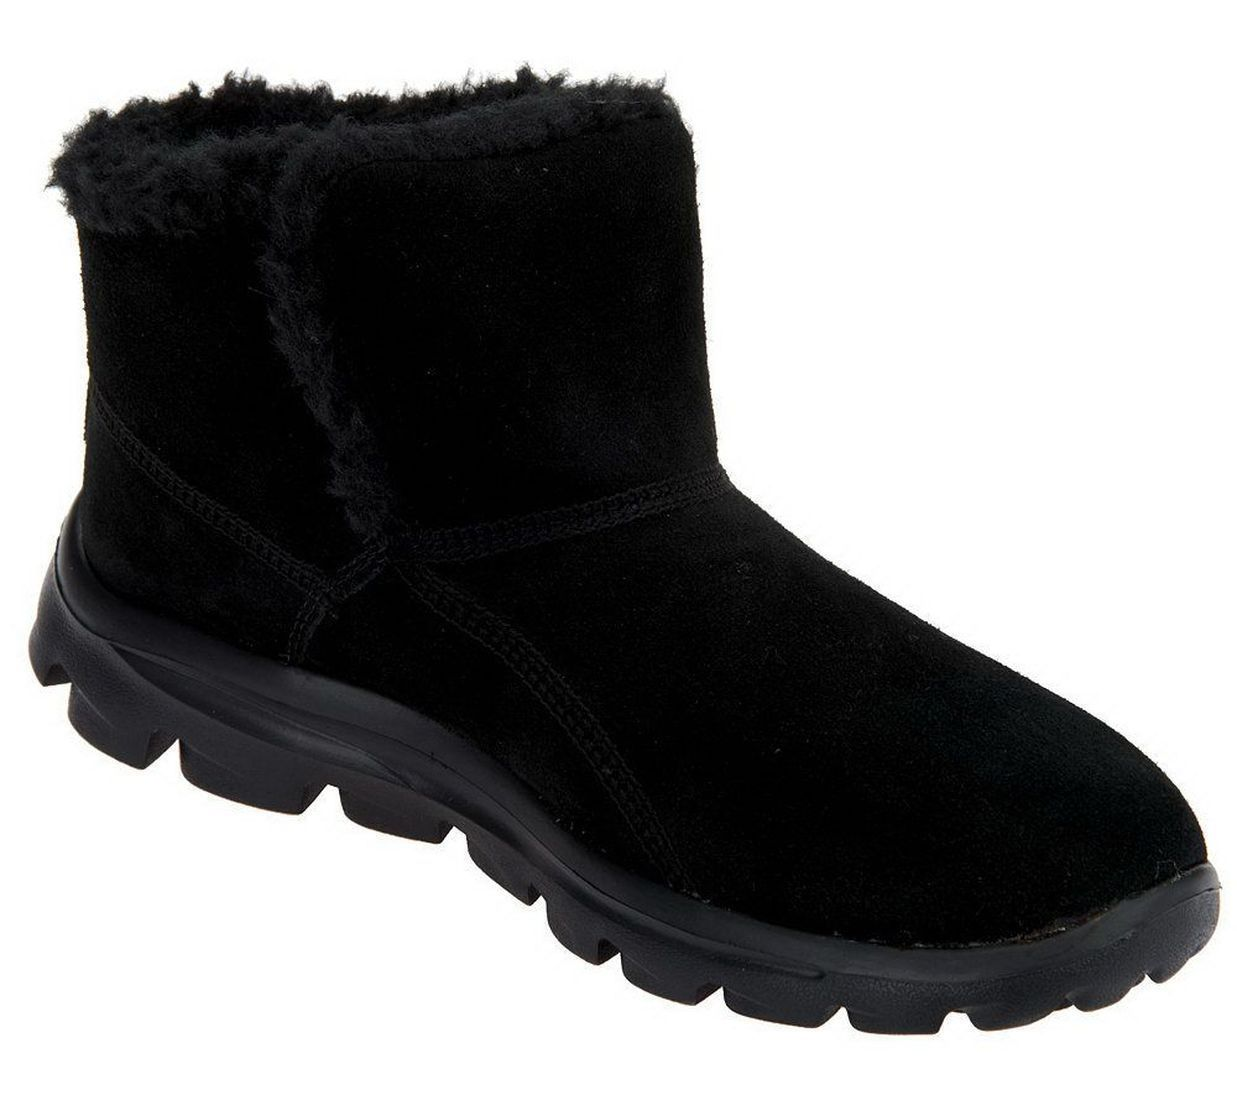 Skechers Gowalk Comfy Suede Ankle Boots Faux Fur Lining